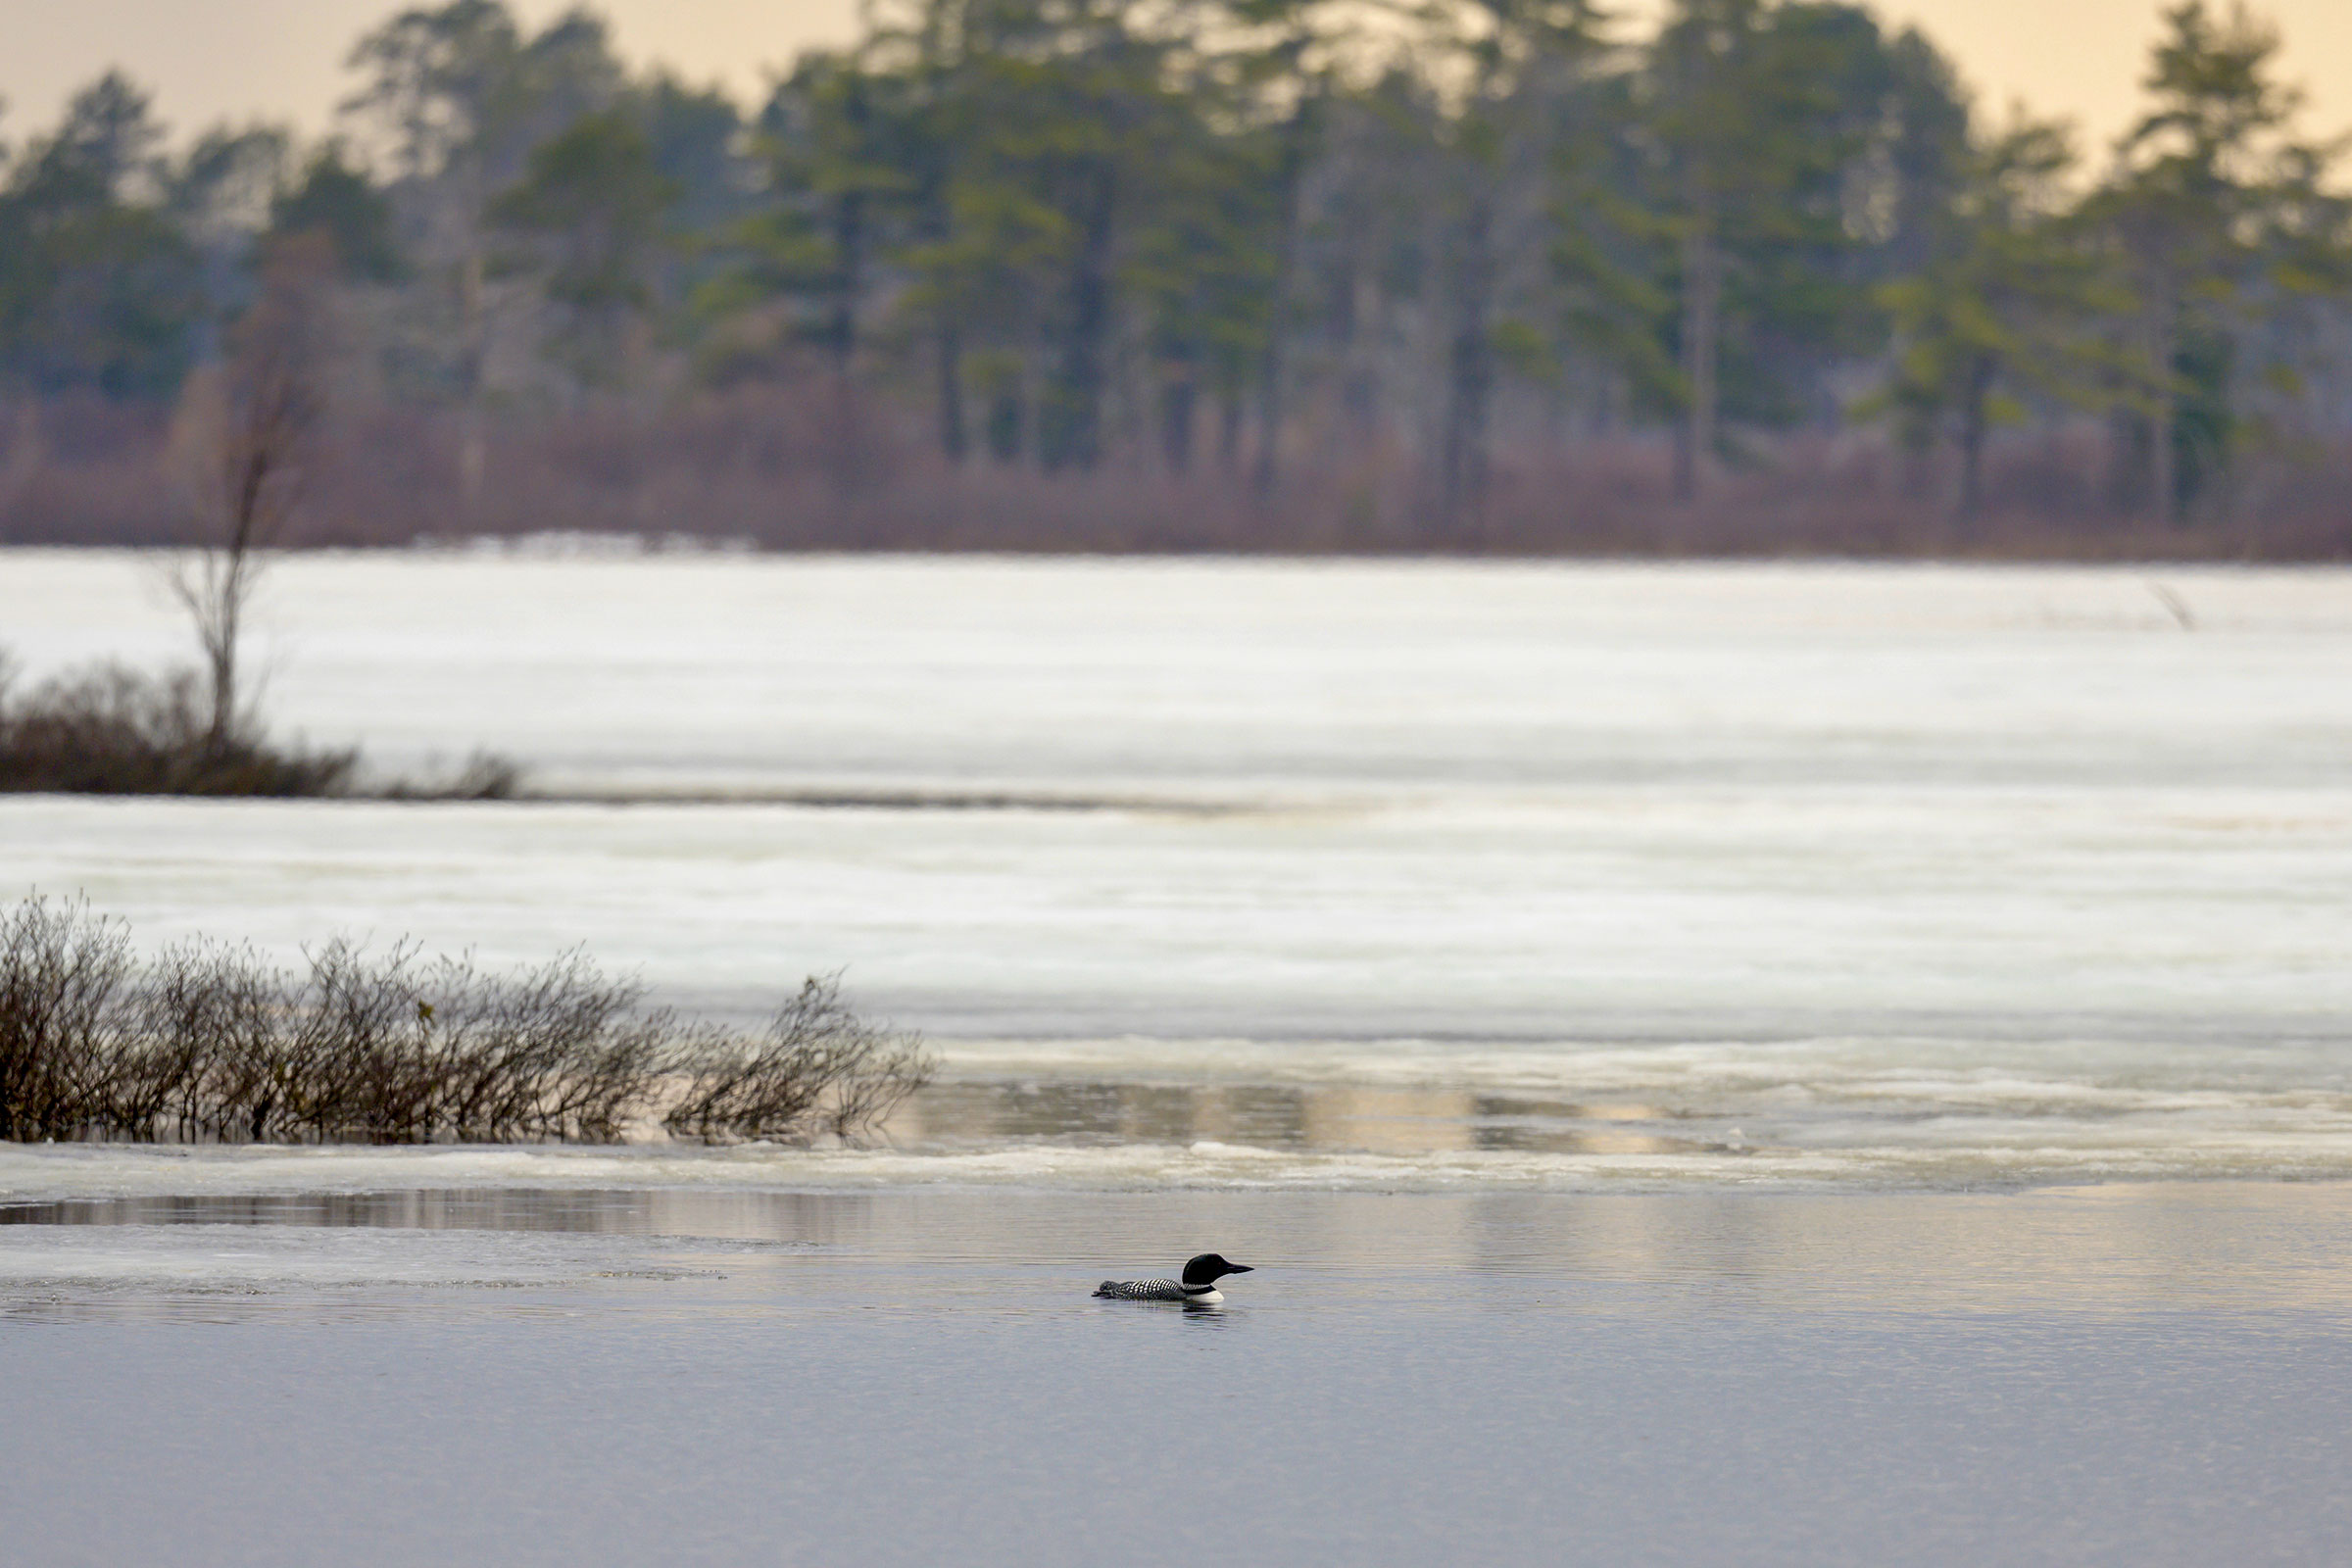 Fe on her territory at Seney National Wildlife Refuge in April 2020. Laura Wong